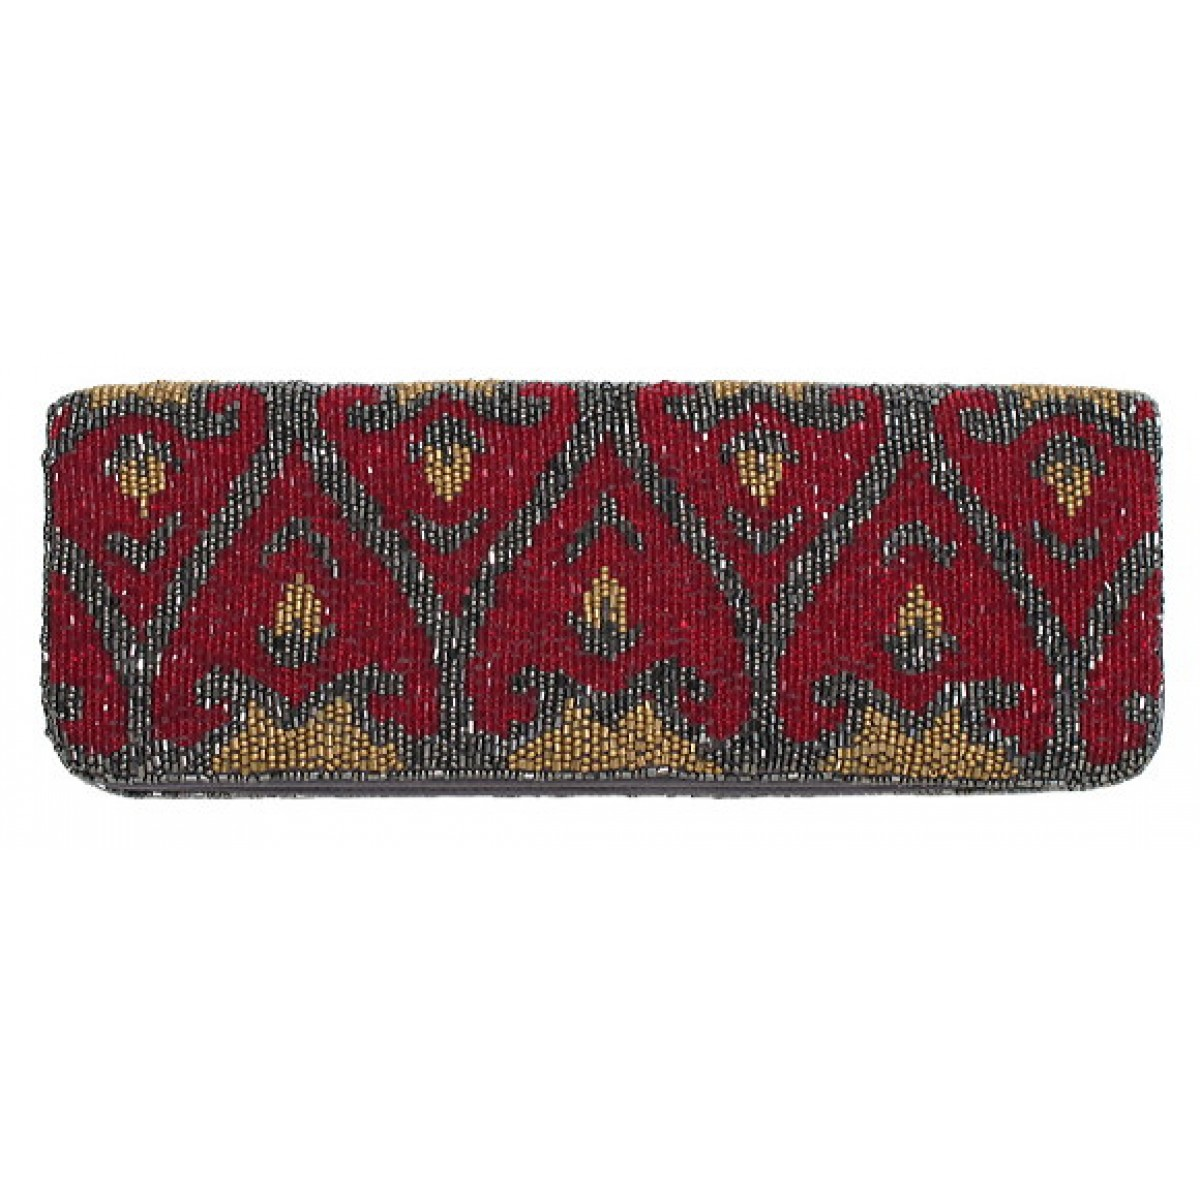 Beaded Clutch with Strap